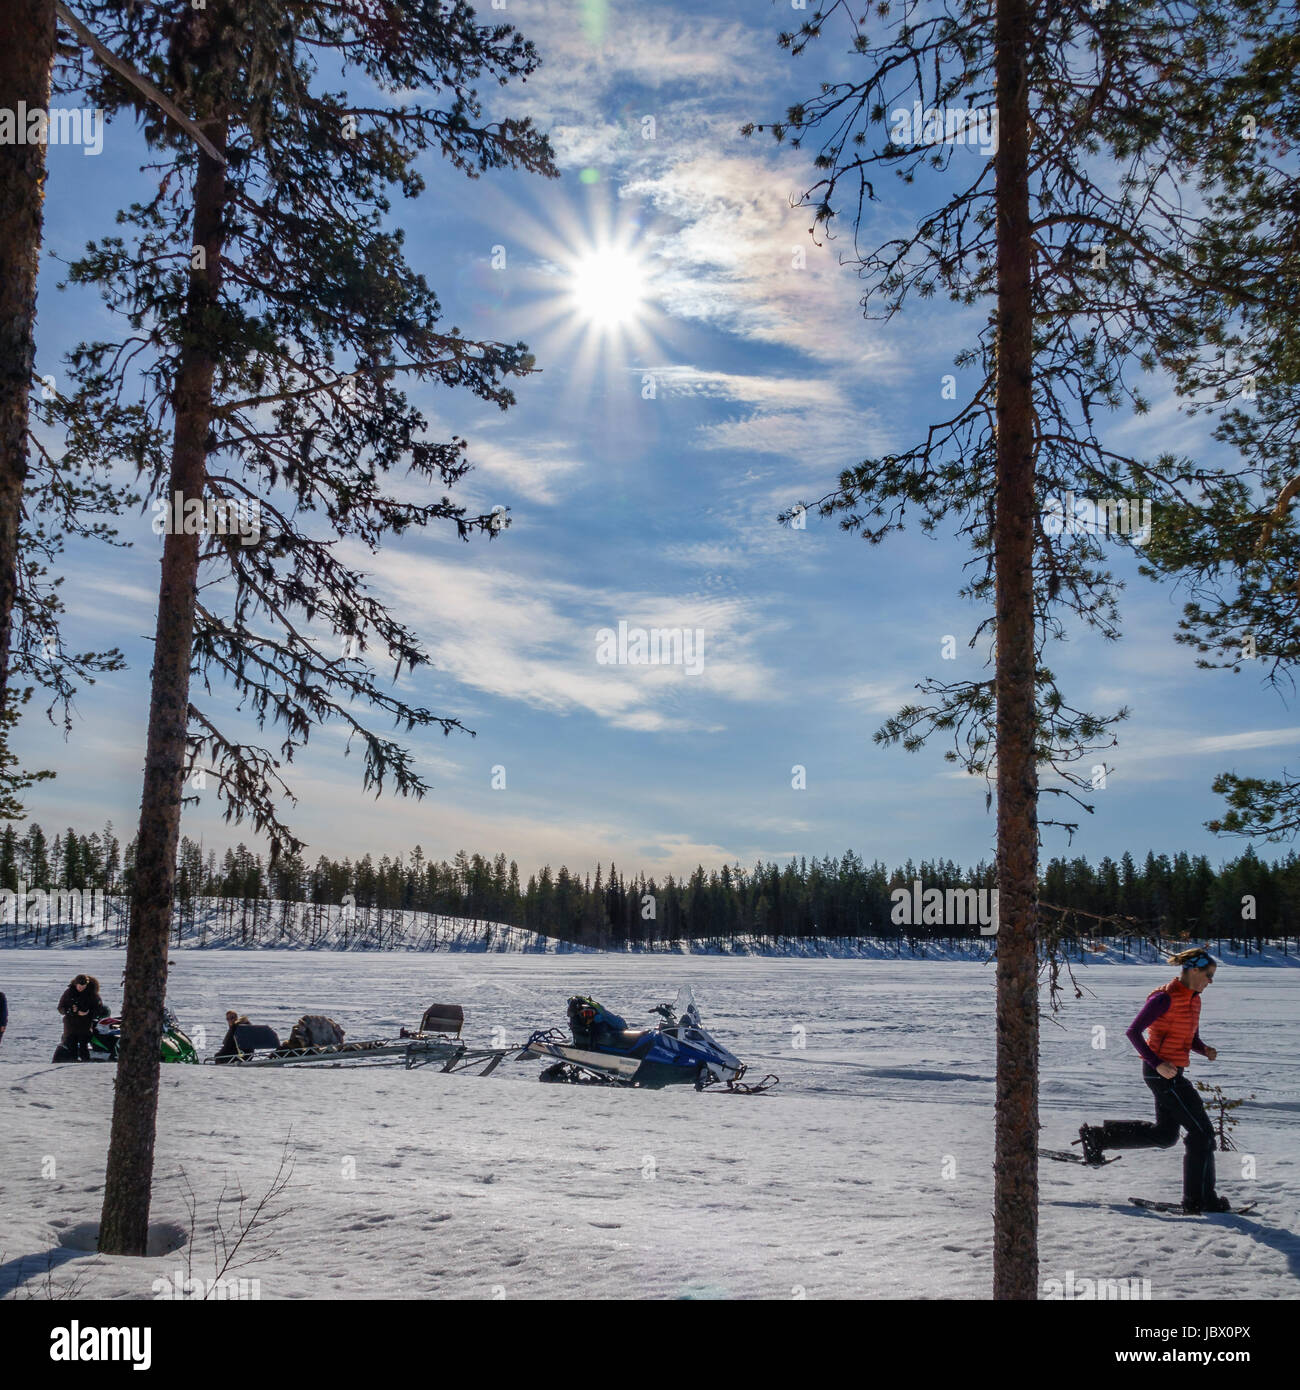 Kangos is a locality situated in Pajala Municipality, Norrbotten County, Swedish Lapland. - Stock Image